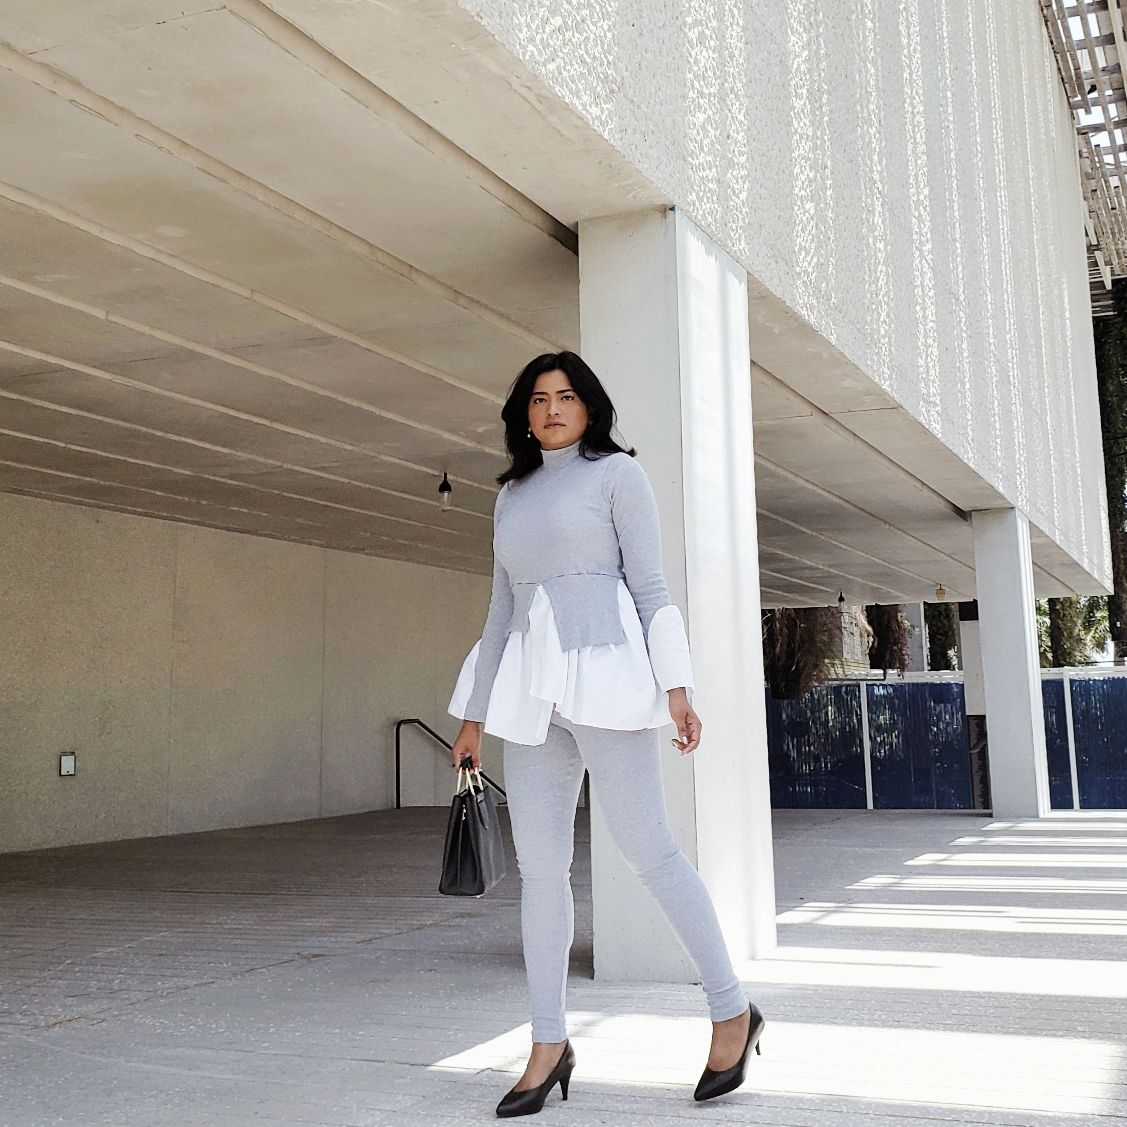 Grey Layered Look Jumper Shirt Loungewear Femme Luxe Finer Miami Style Blogger